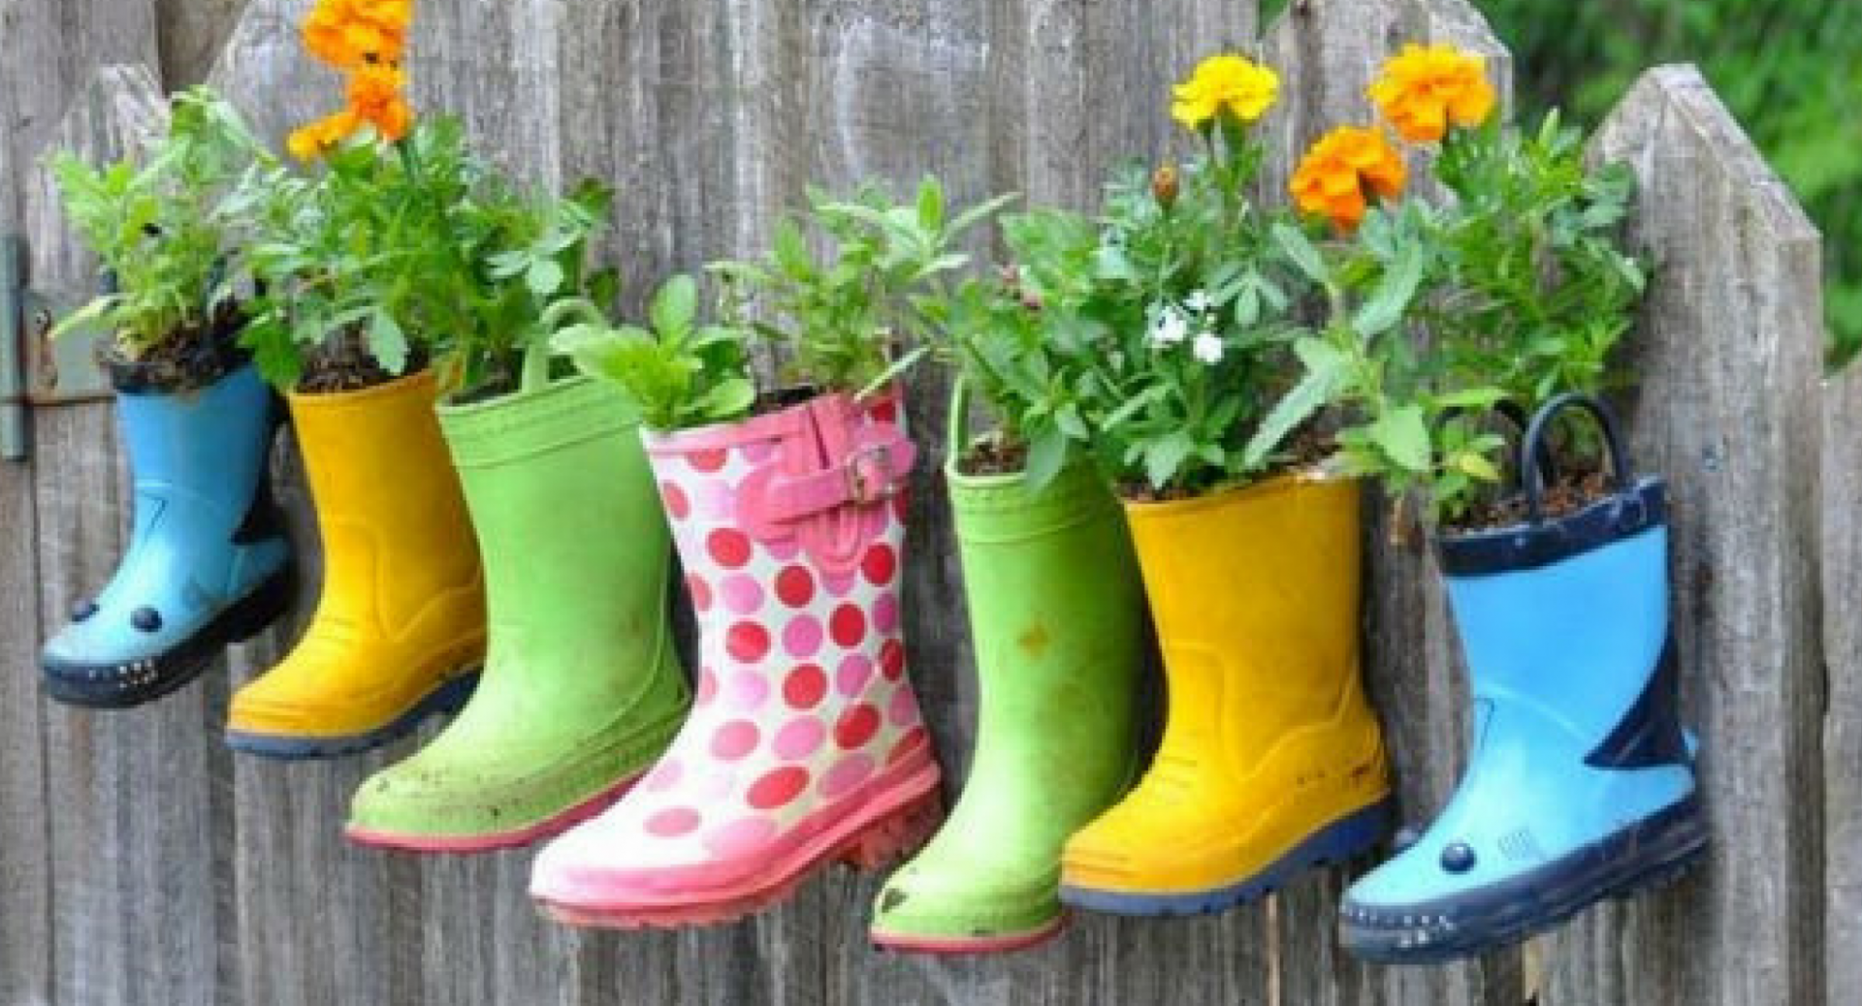 10 inventive & quirky upcycling ideas for your garden - garden quirky ideas